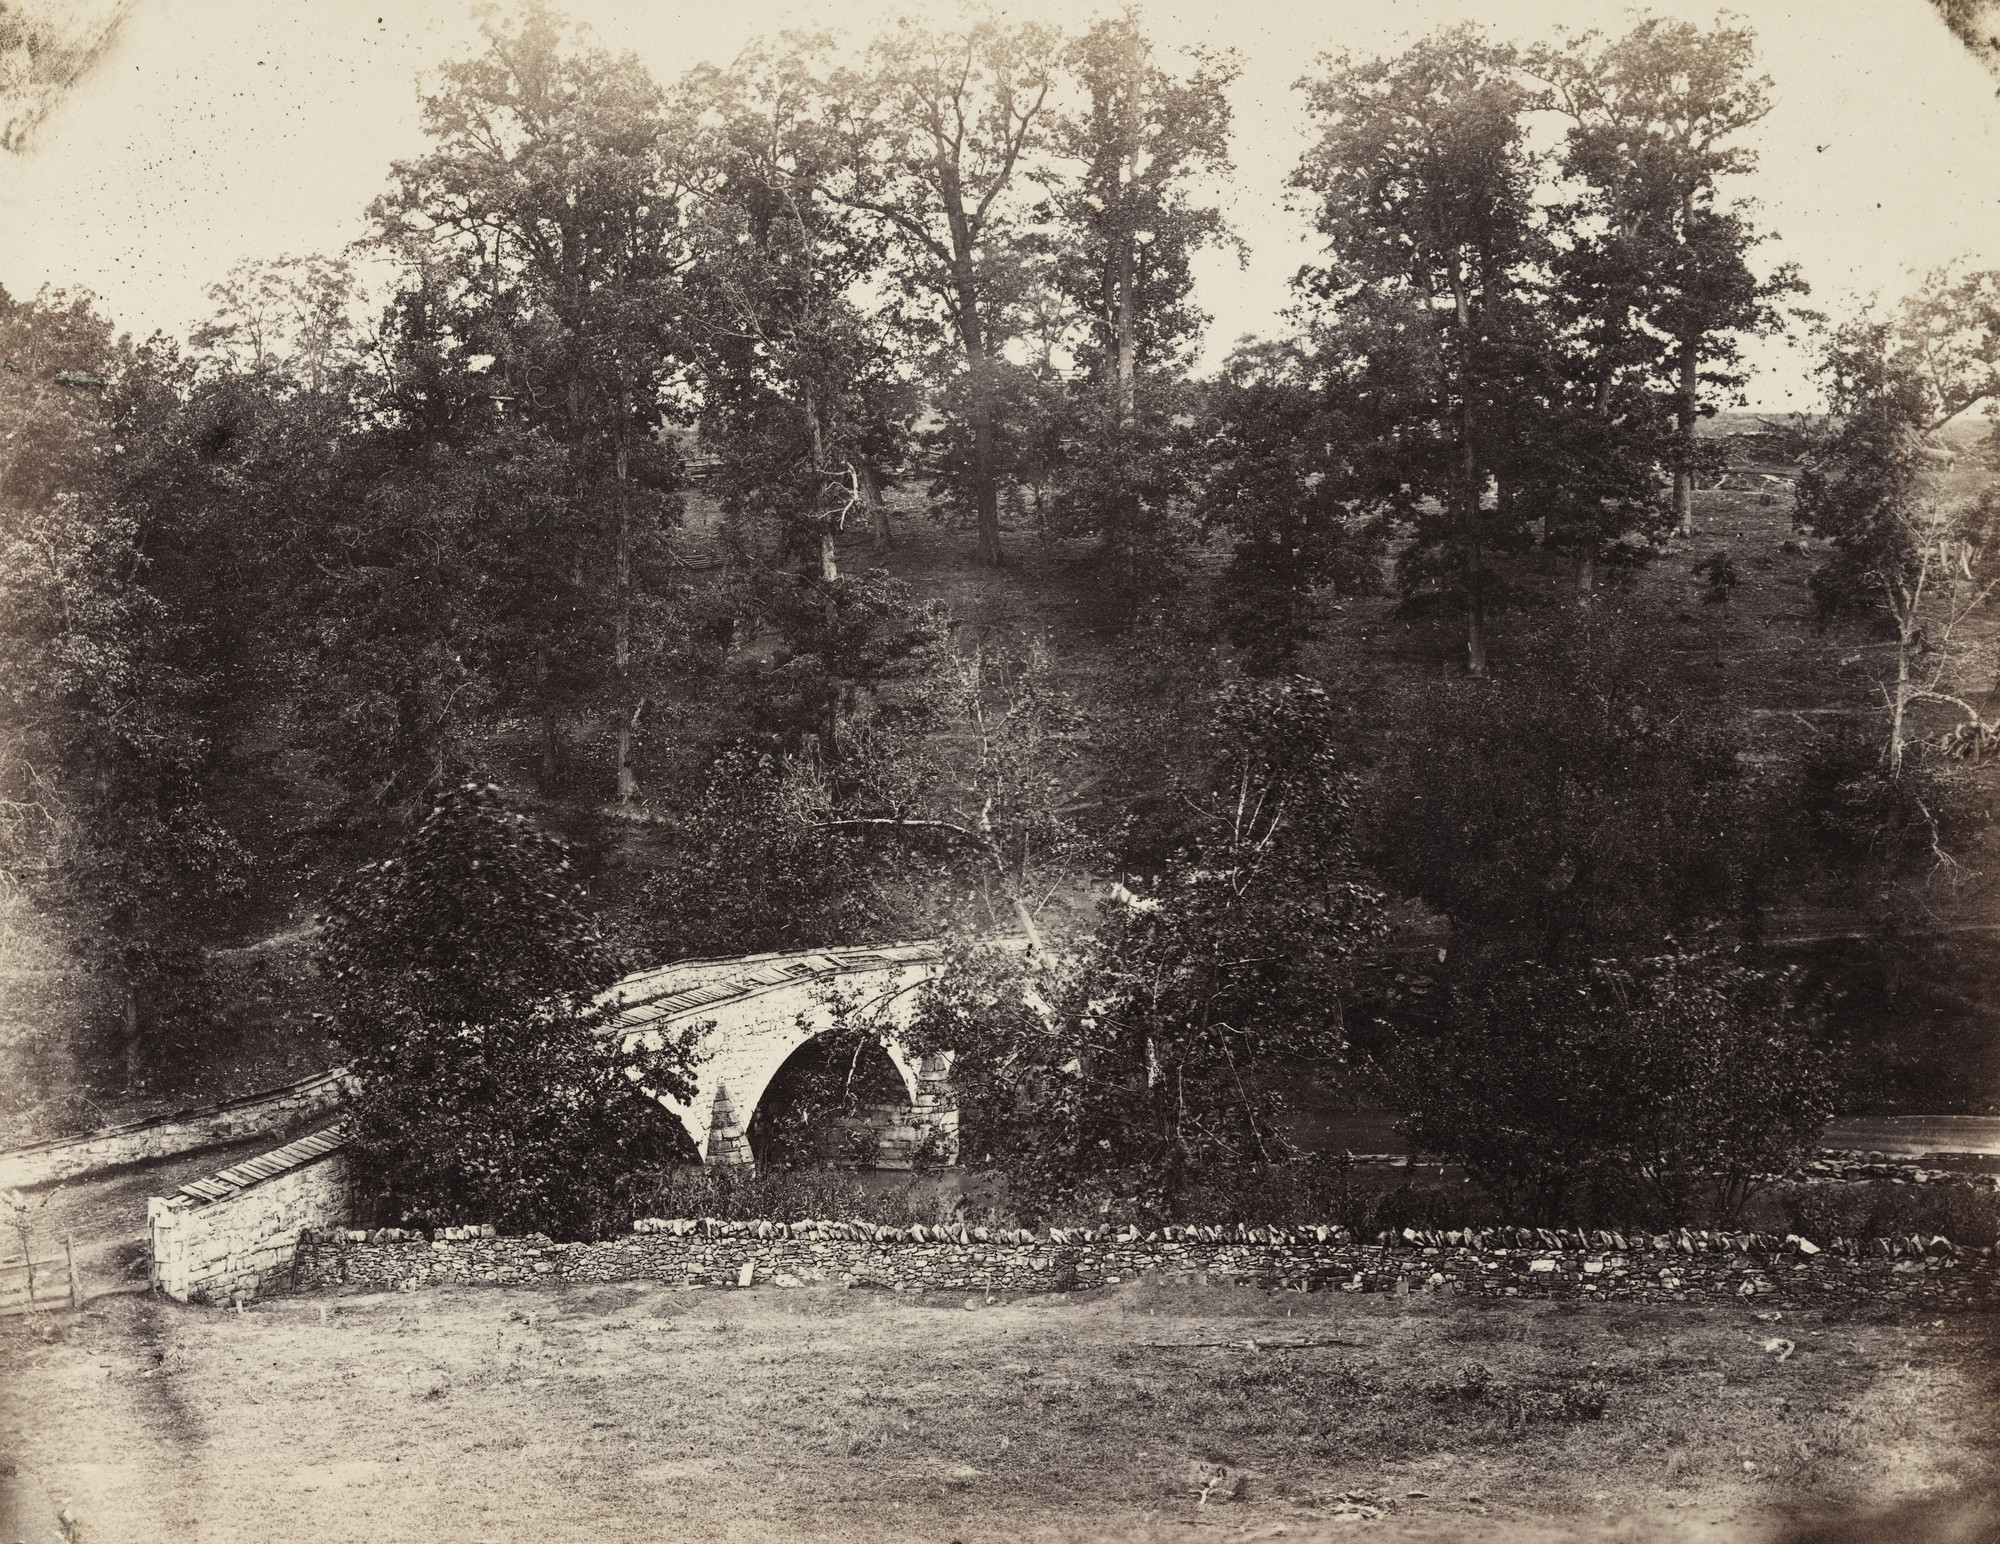 Alexander Gardner. Burnside Bridge, across Antietam Creek, Maryland. September, 1862